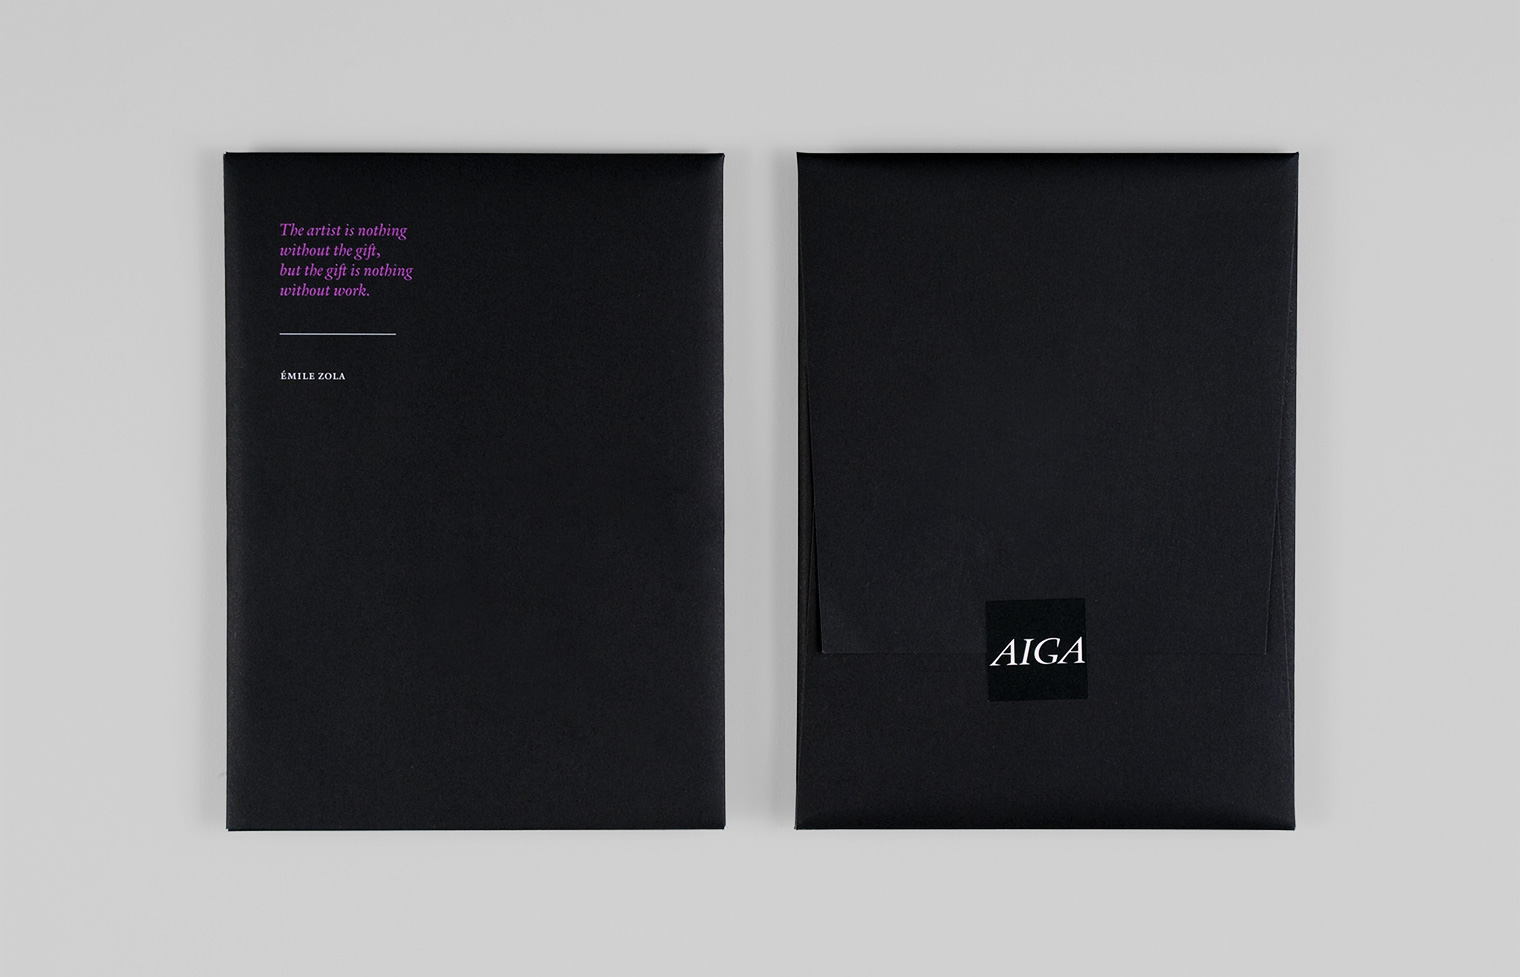 The back of each invitation wrapper is sealed with the AIGA logo.